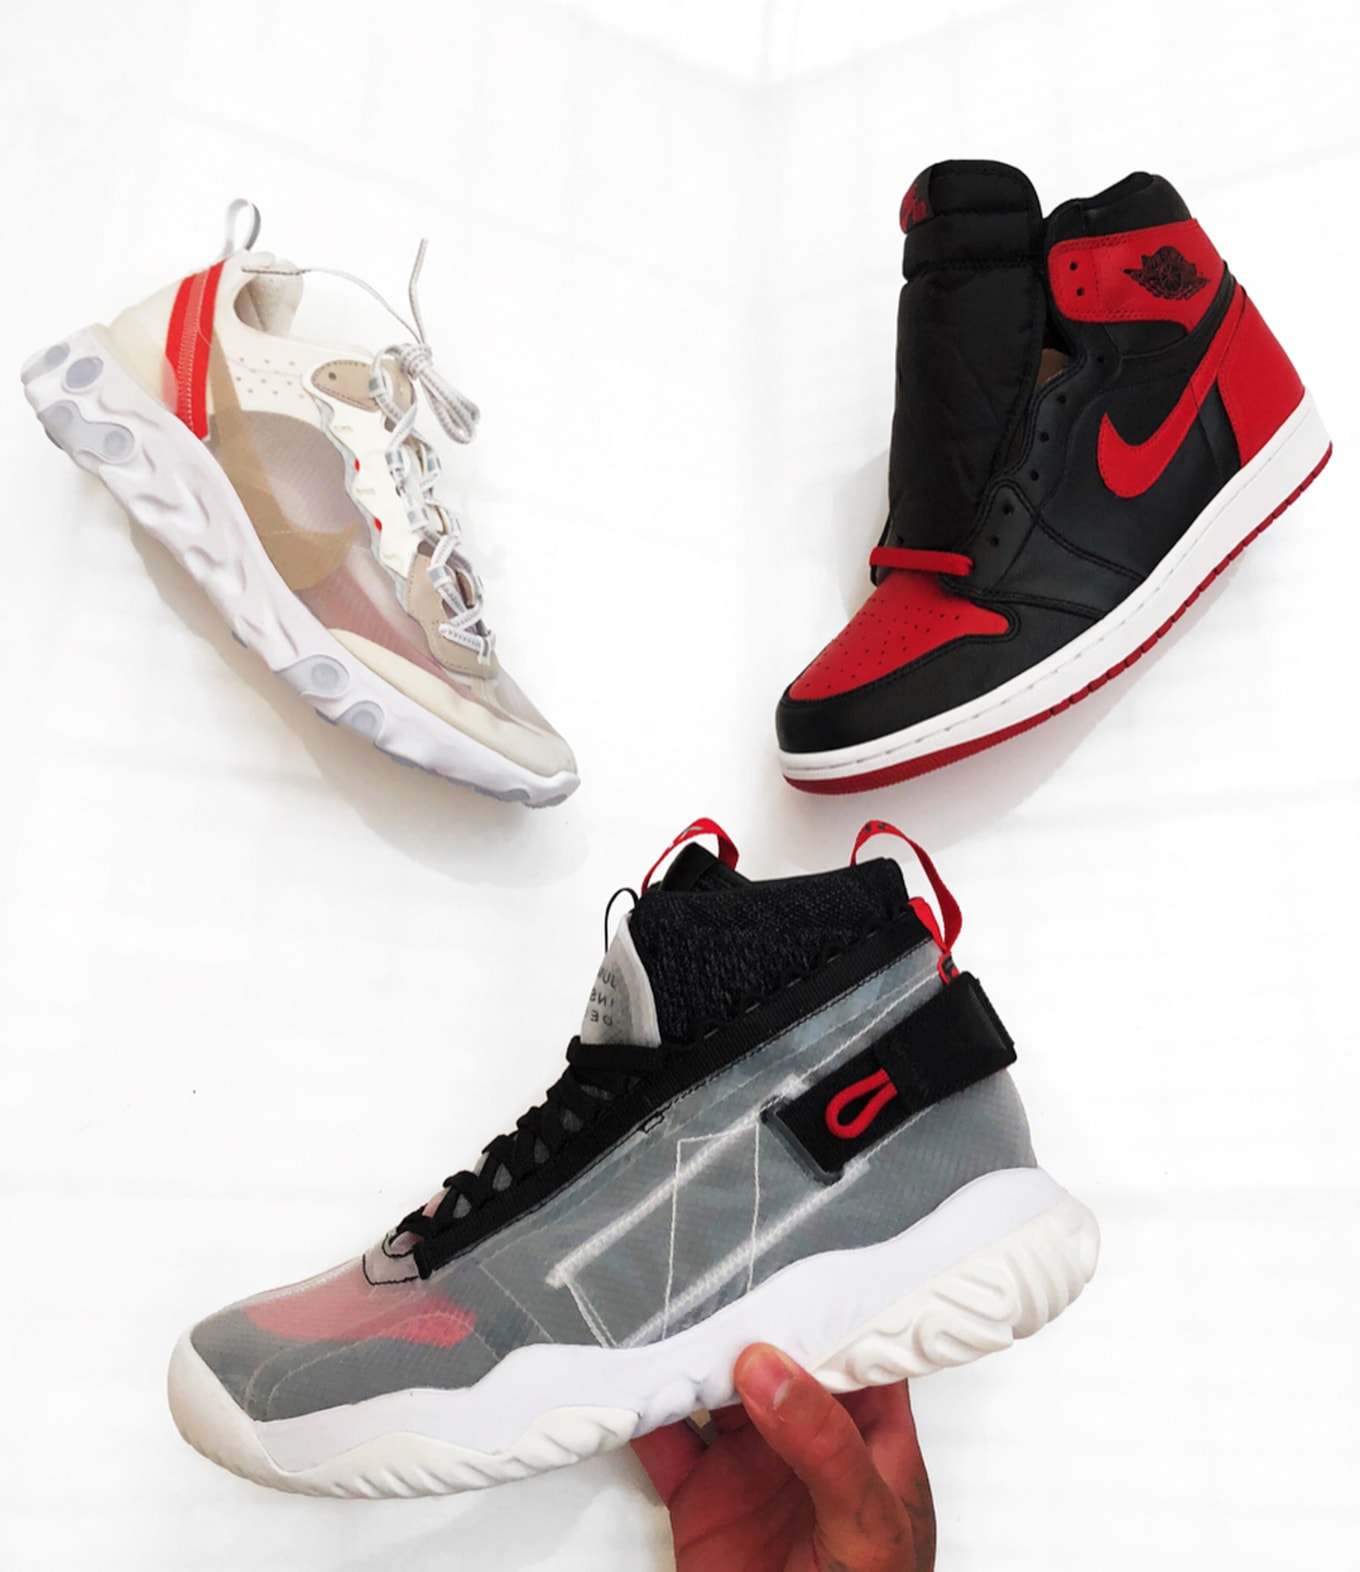 bd7f048dd19 Air Jordan React Apex Utility Assassin Proto and Low | Sole Collector